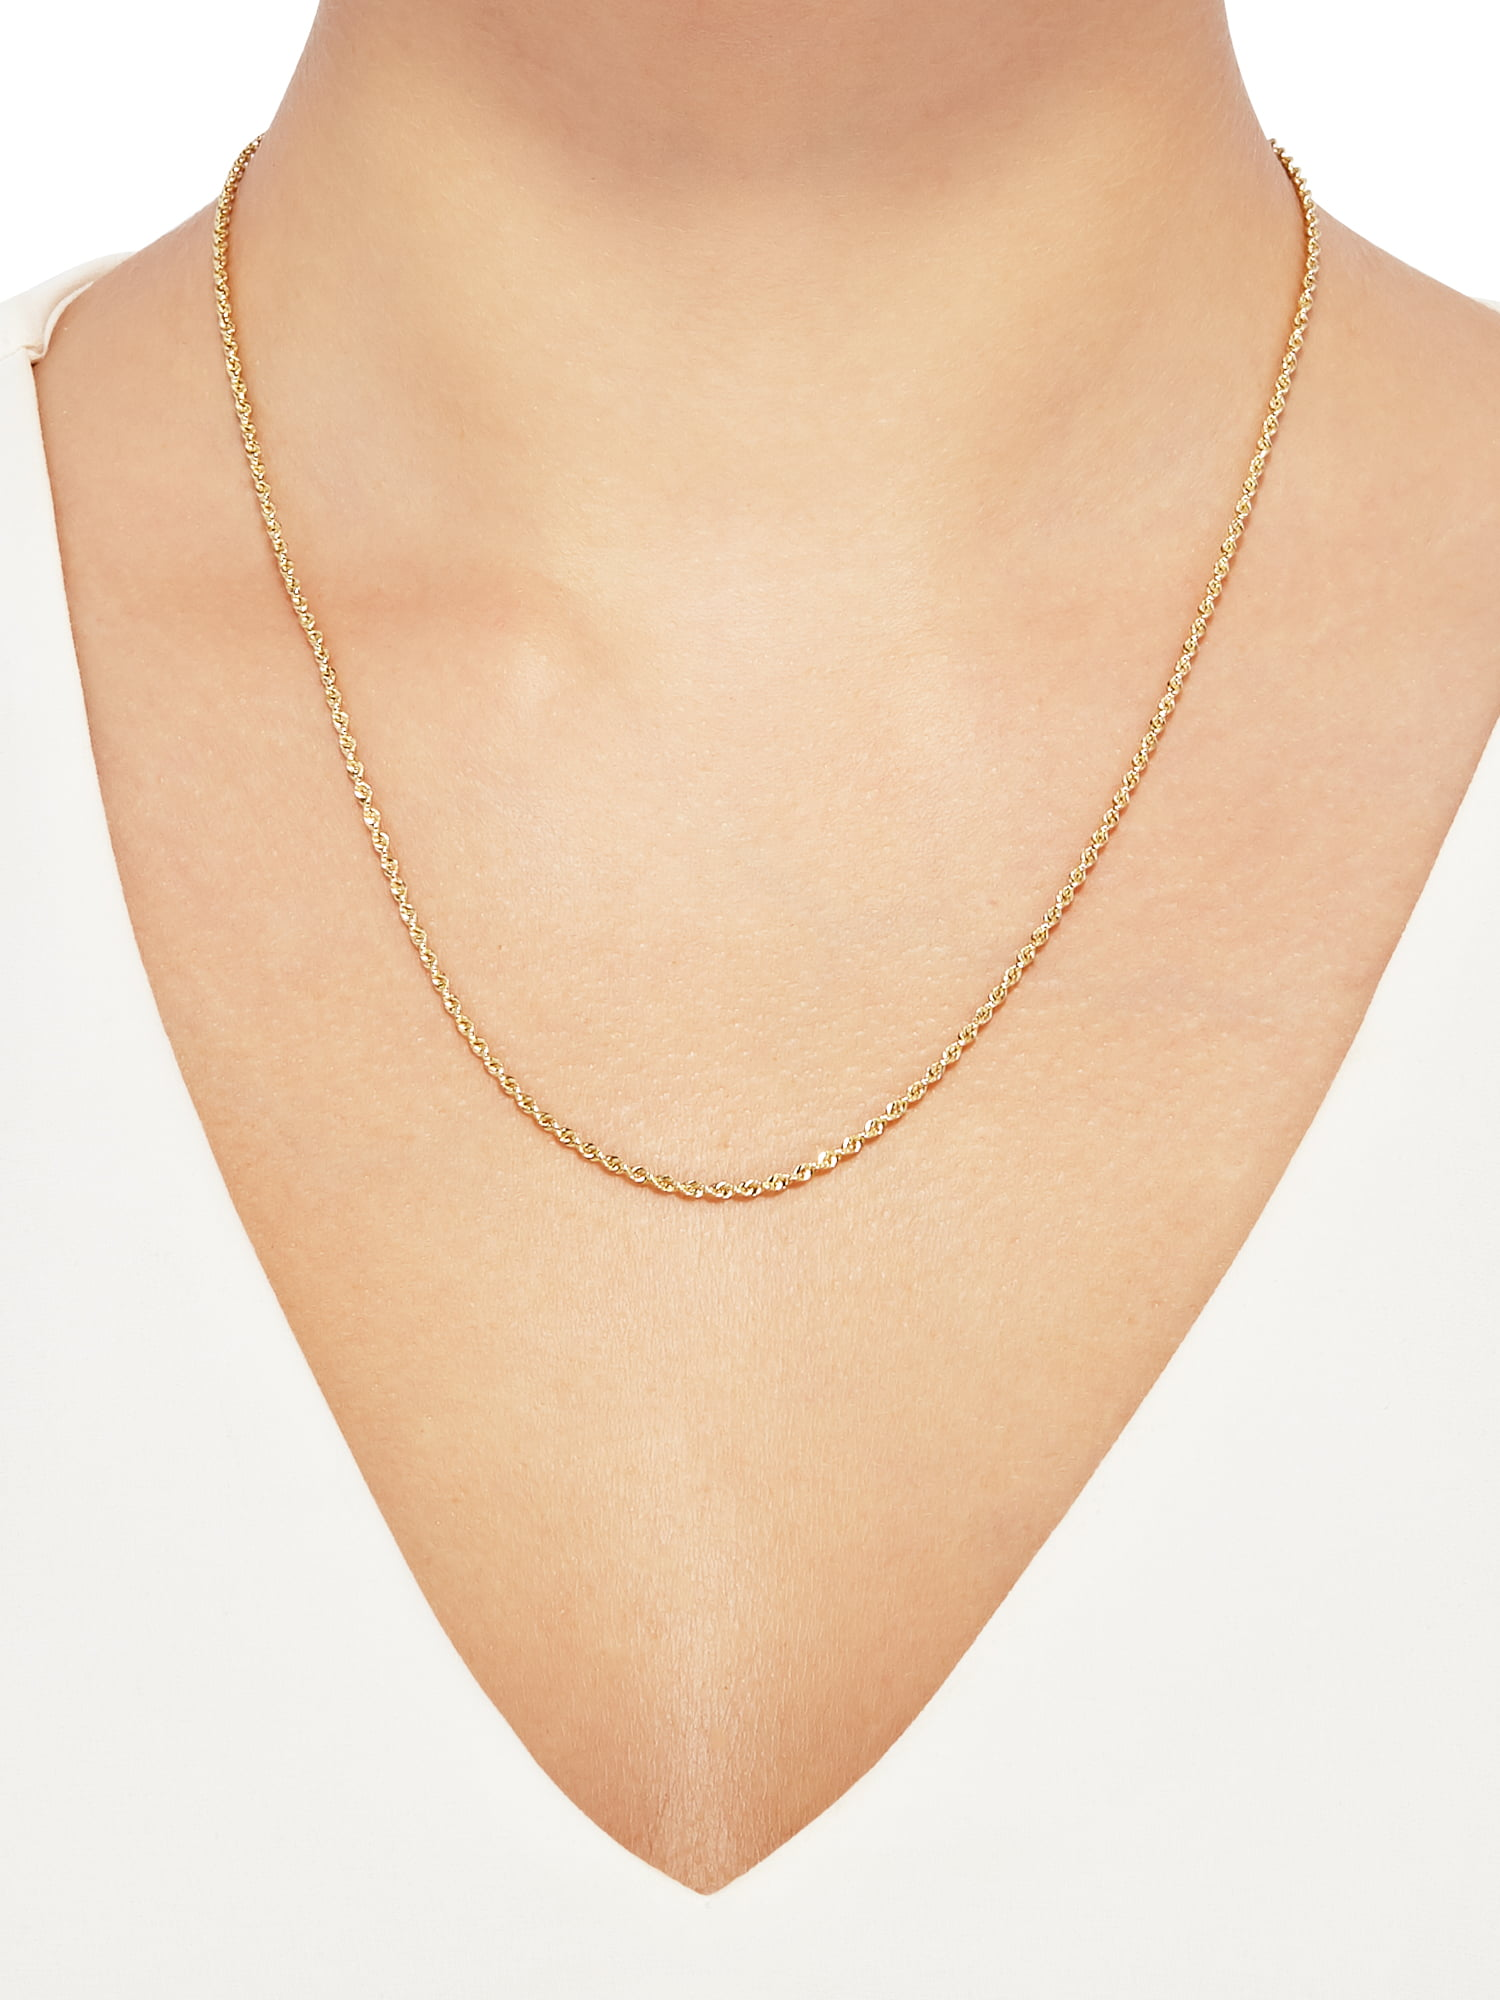 979353bee4b69 Women's 10KT Yellow Gold 2.0mm Rope Chain Necklace, Simply Gold